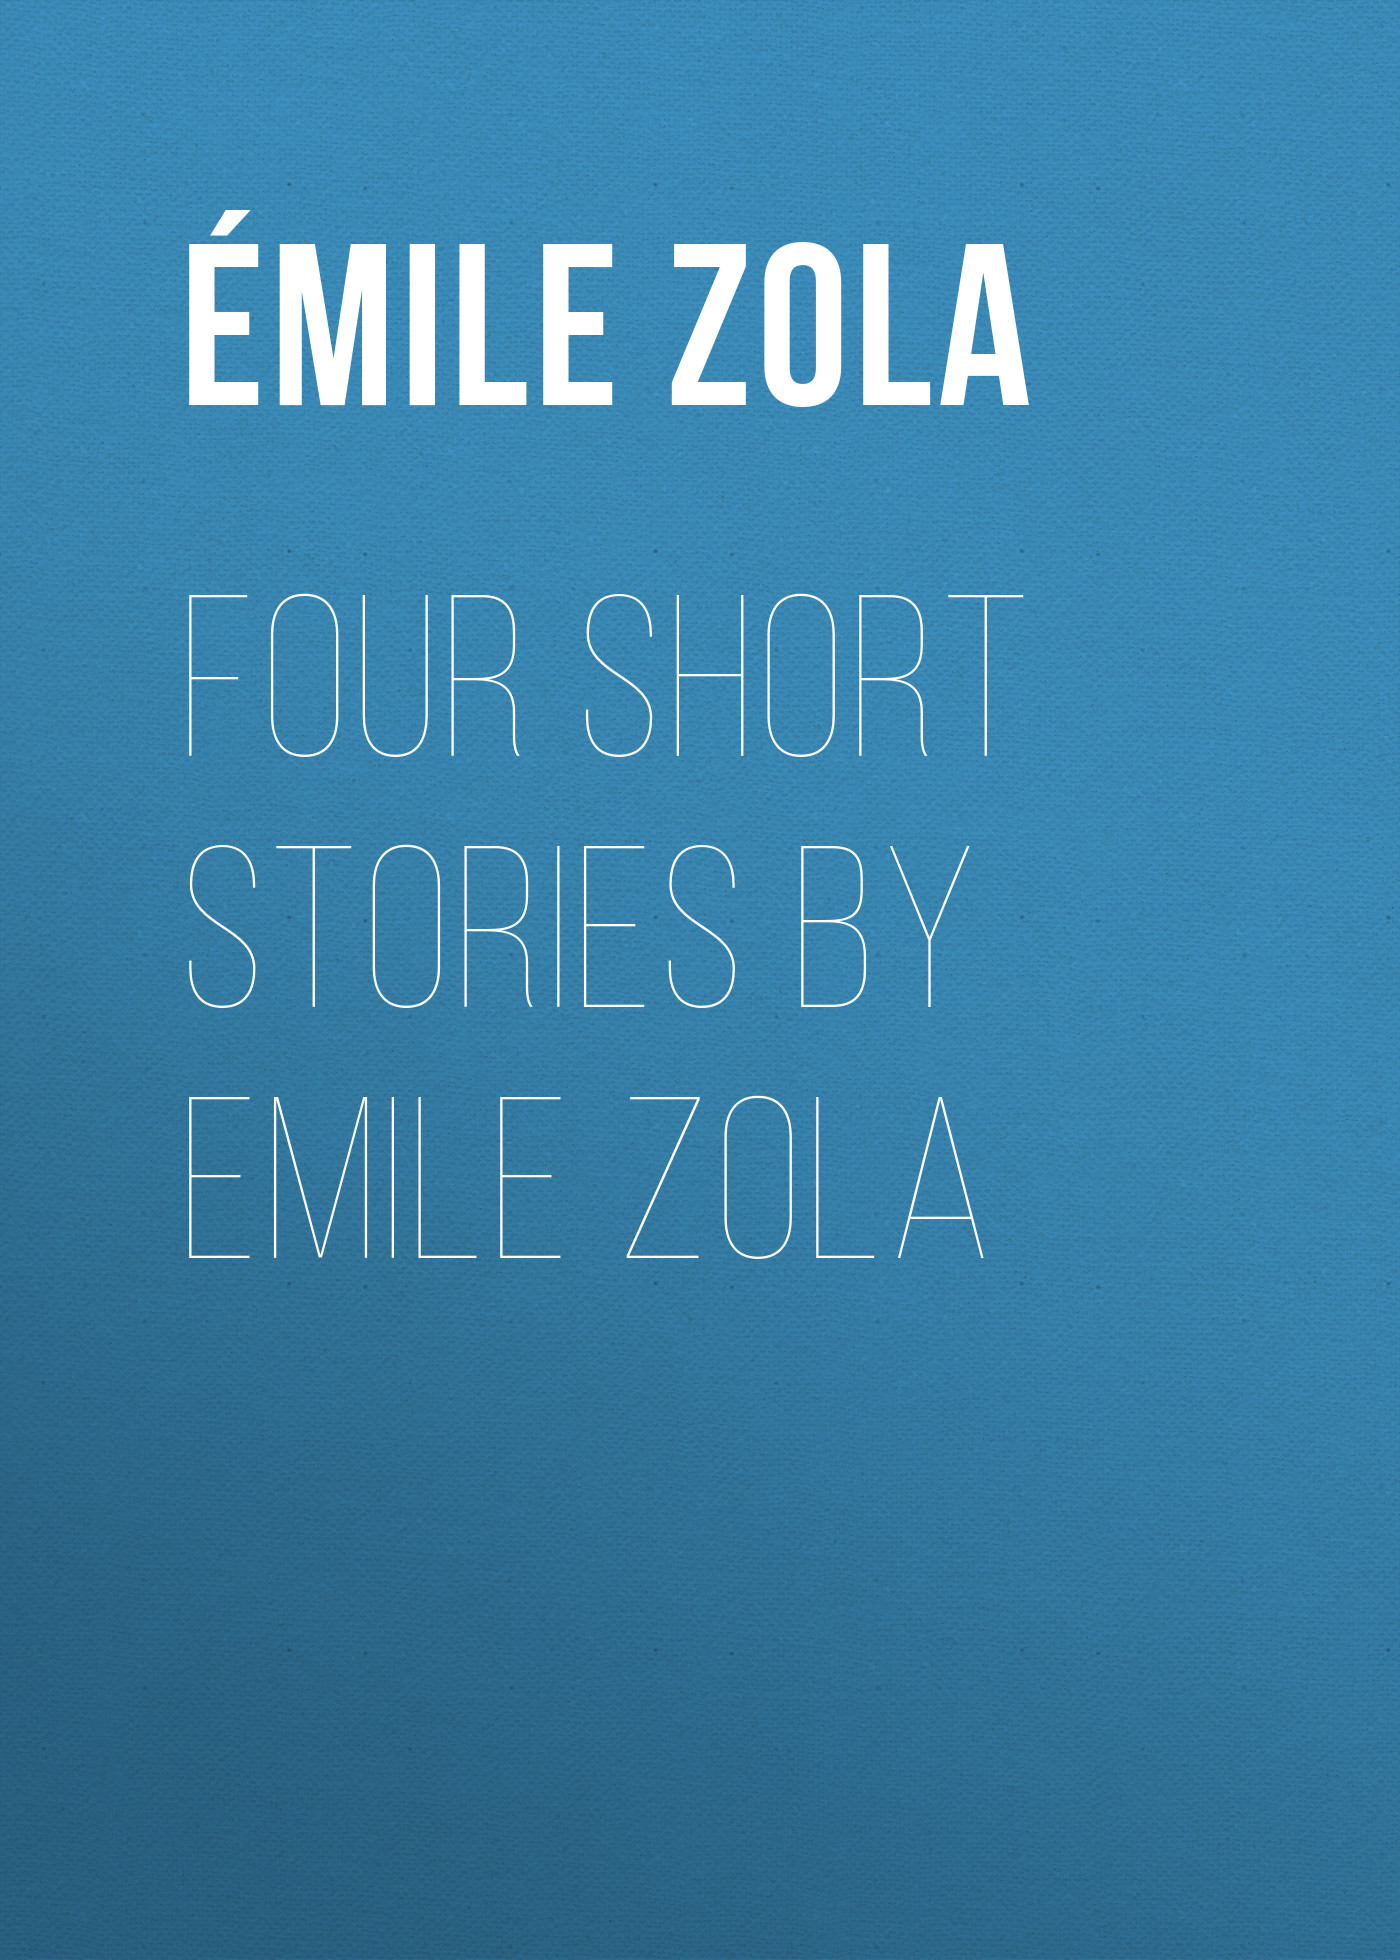 Эмиль Золя Four Short Stories By Emile Zola эмиль золя four short stories by emile zola